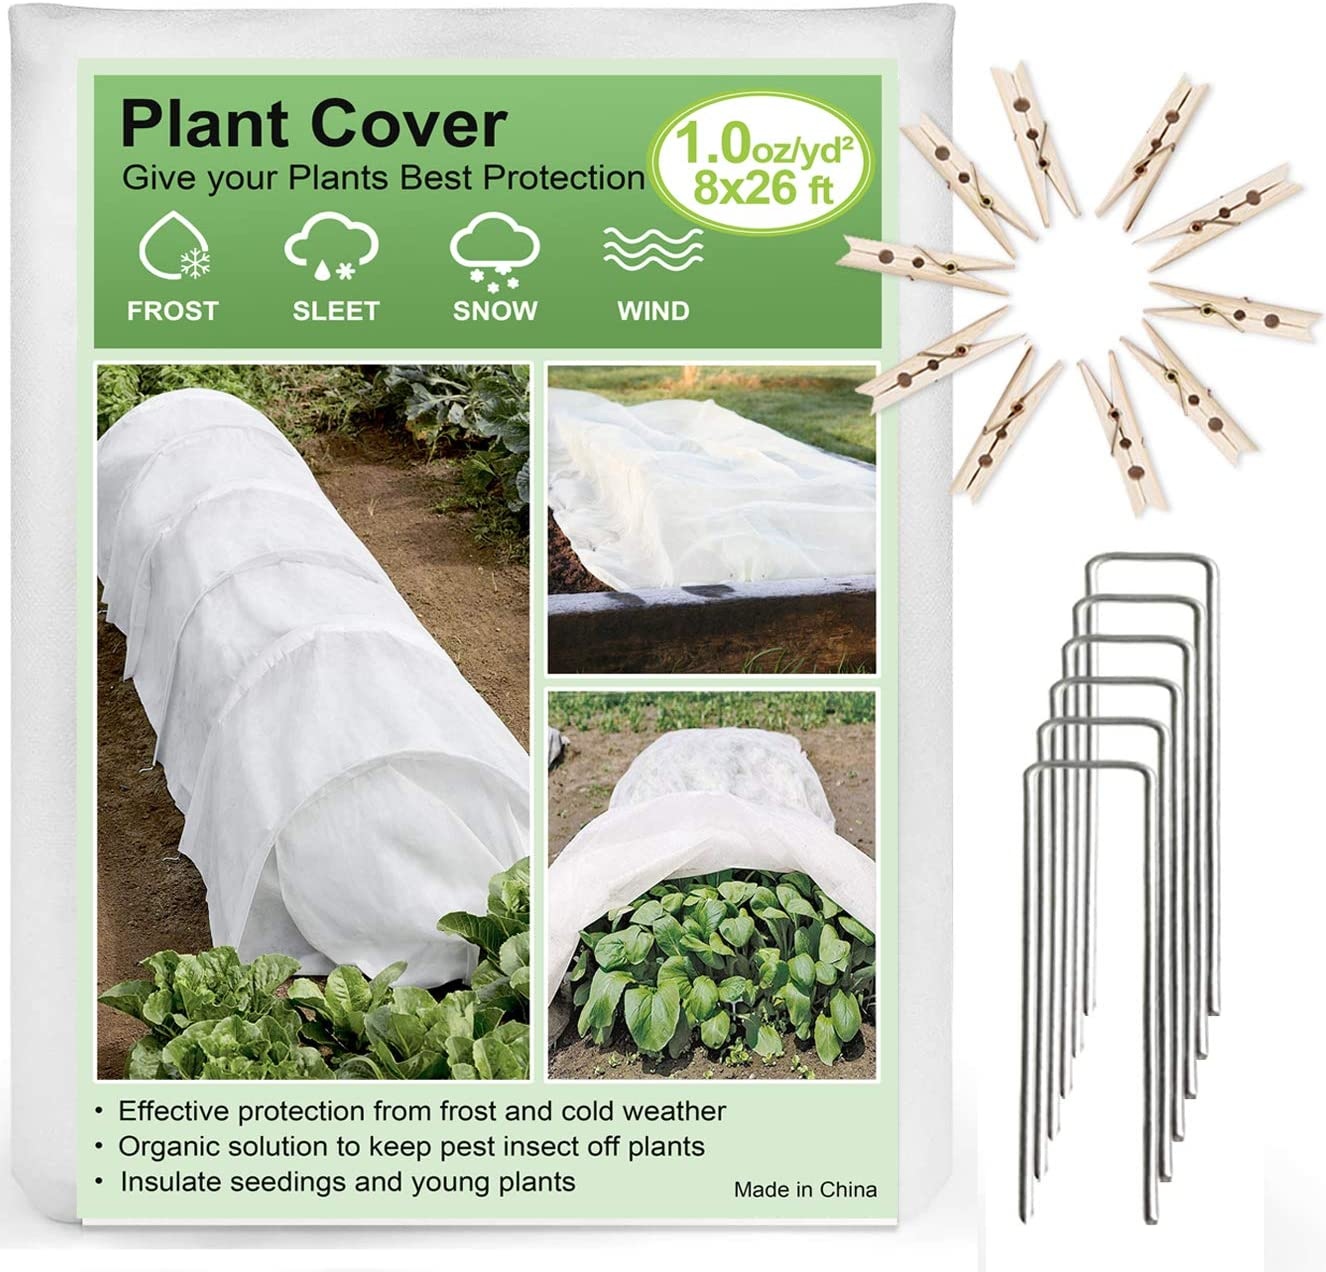 Plant Covers Freeze Protection, Reusable Garden Floating Row Cover for Plants & Vegetables in Winter (8FTx26FT, 1oz/yd² with 6 PCS Garden Stakes and 10 PCS wood clips)